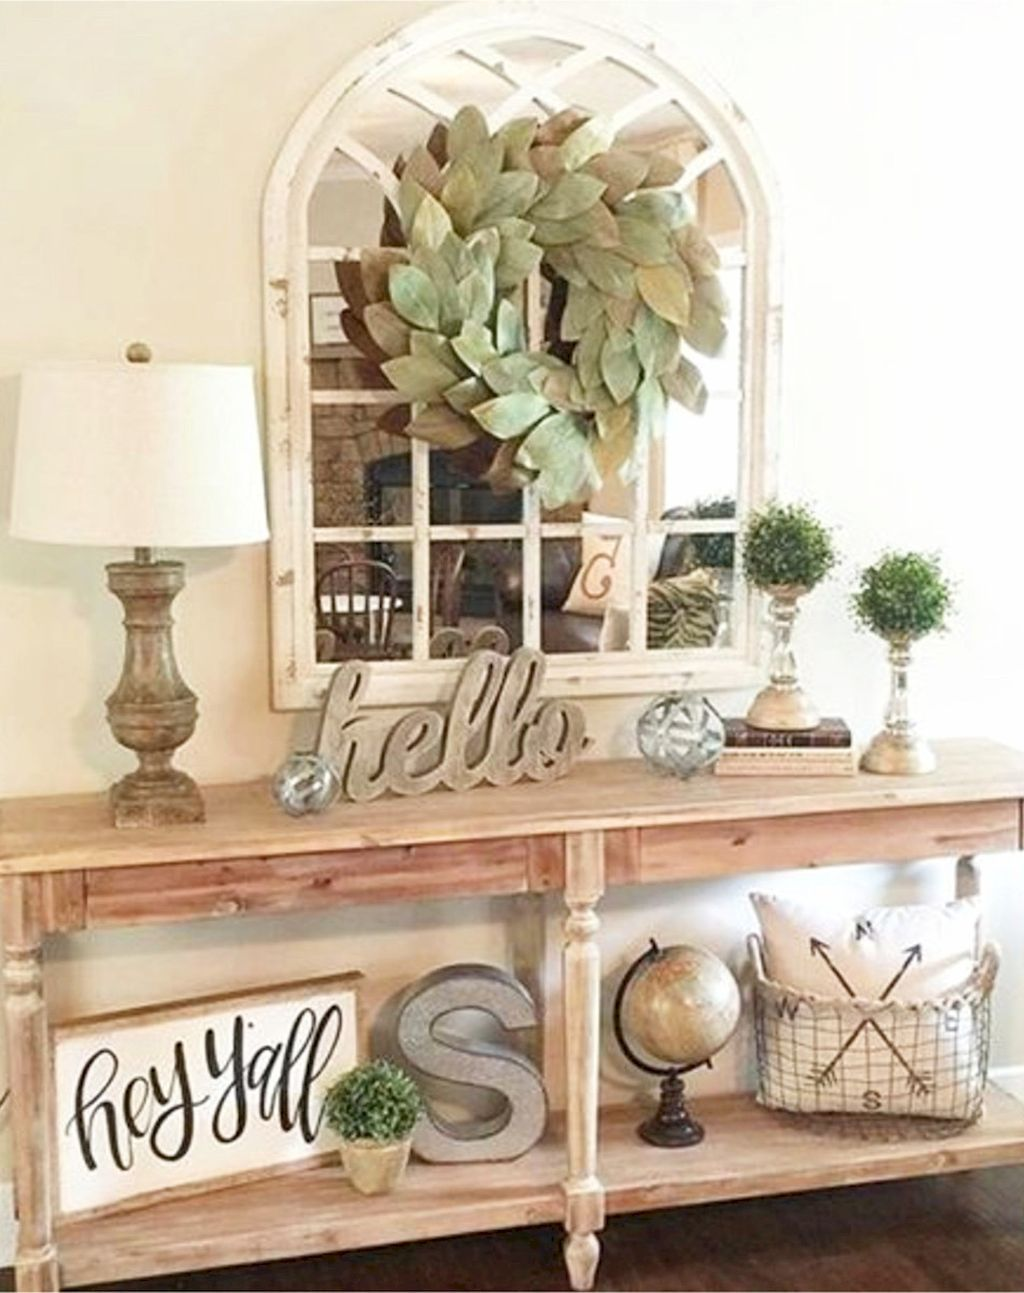 Rustic Entryway Decorating Ideas 28 Rustichomedecorating Foyer Decorating Farm House Living Room Home Decor